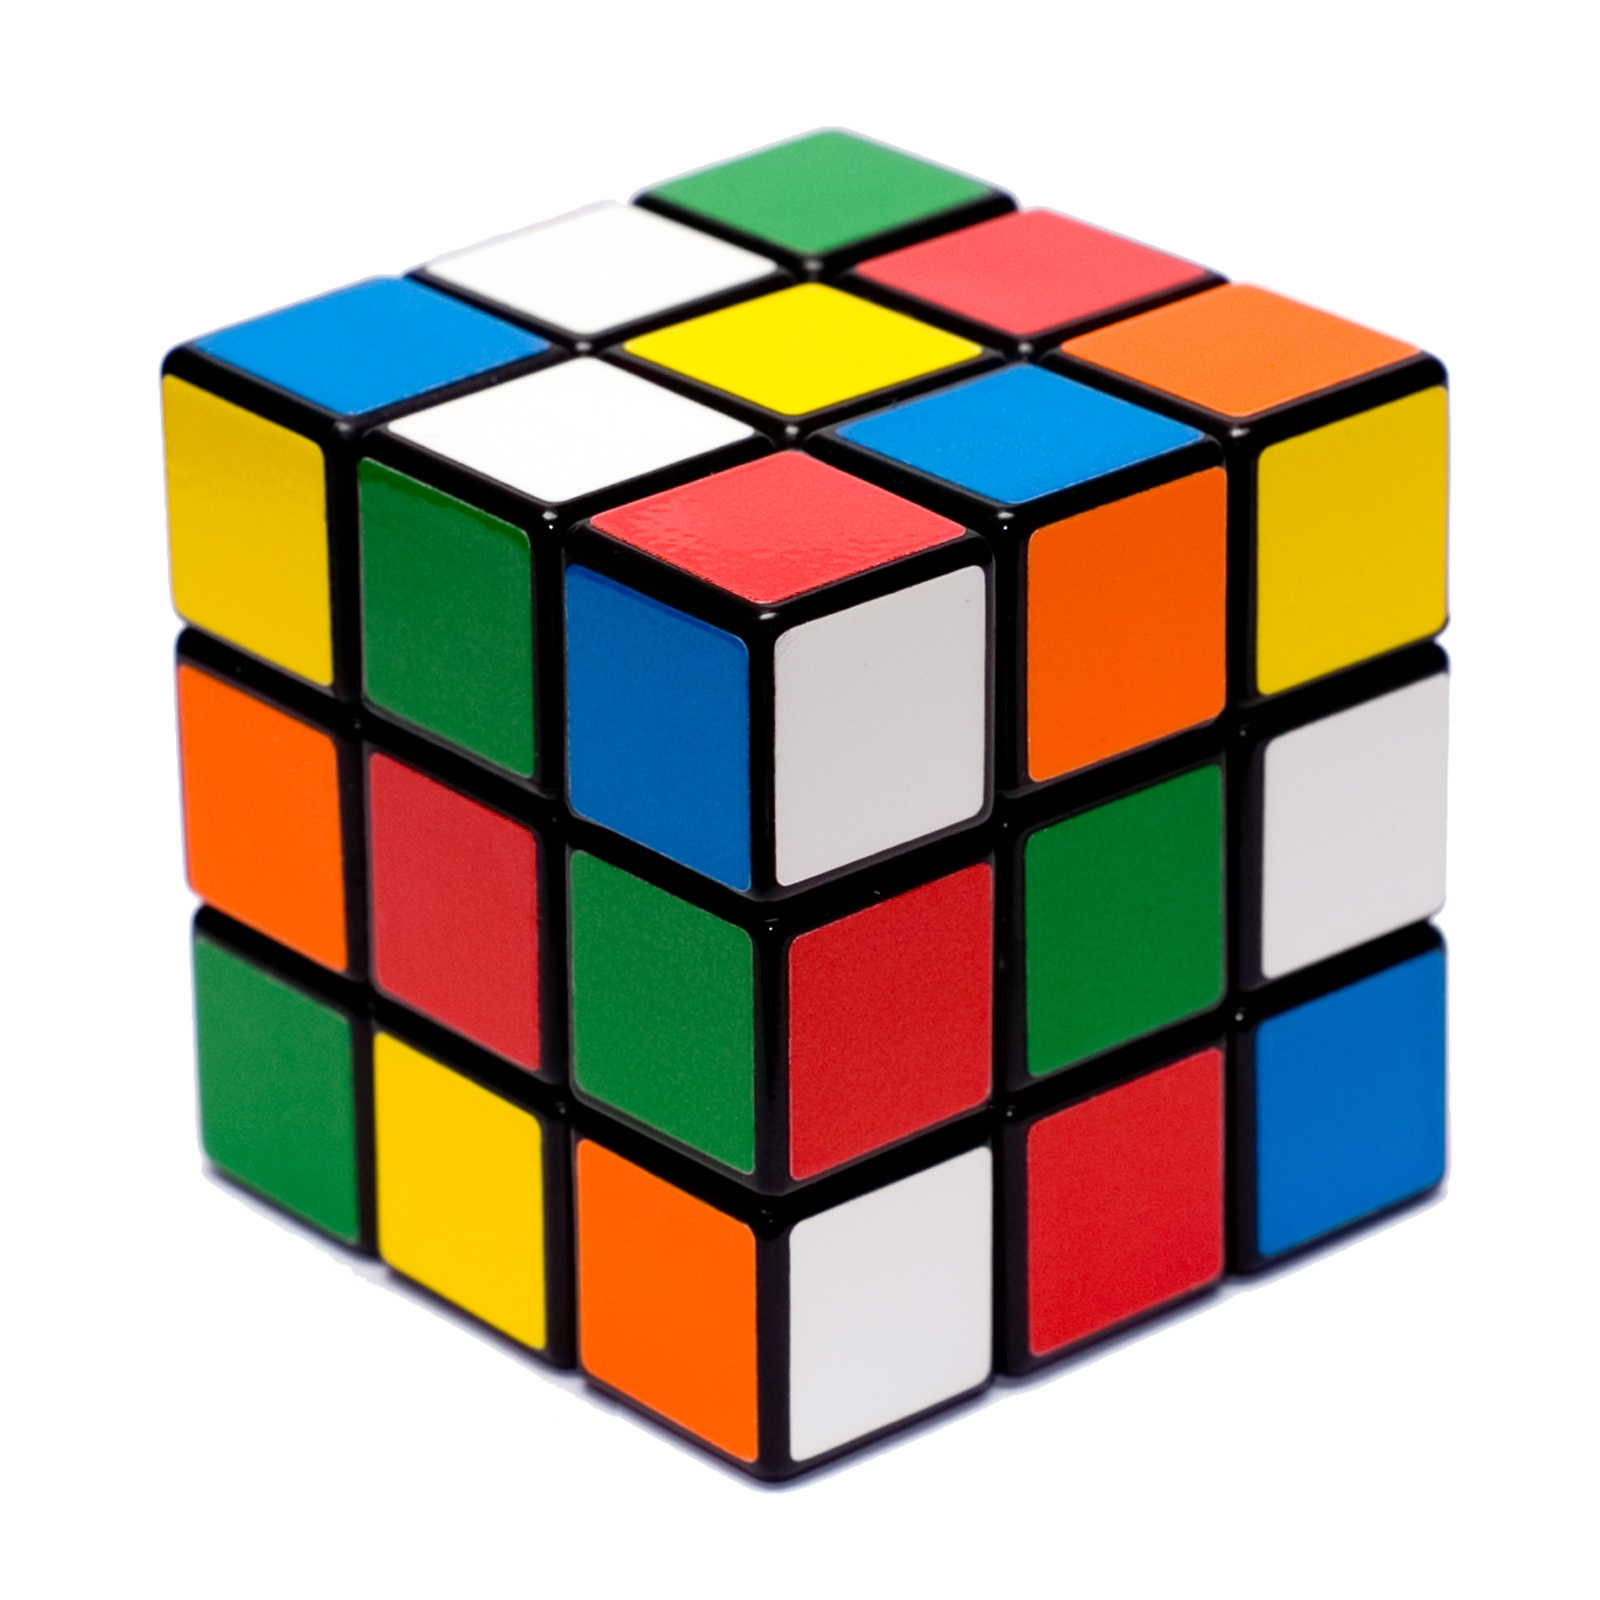 Open source image of a scrammbled Rubik's Cube